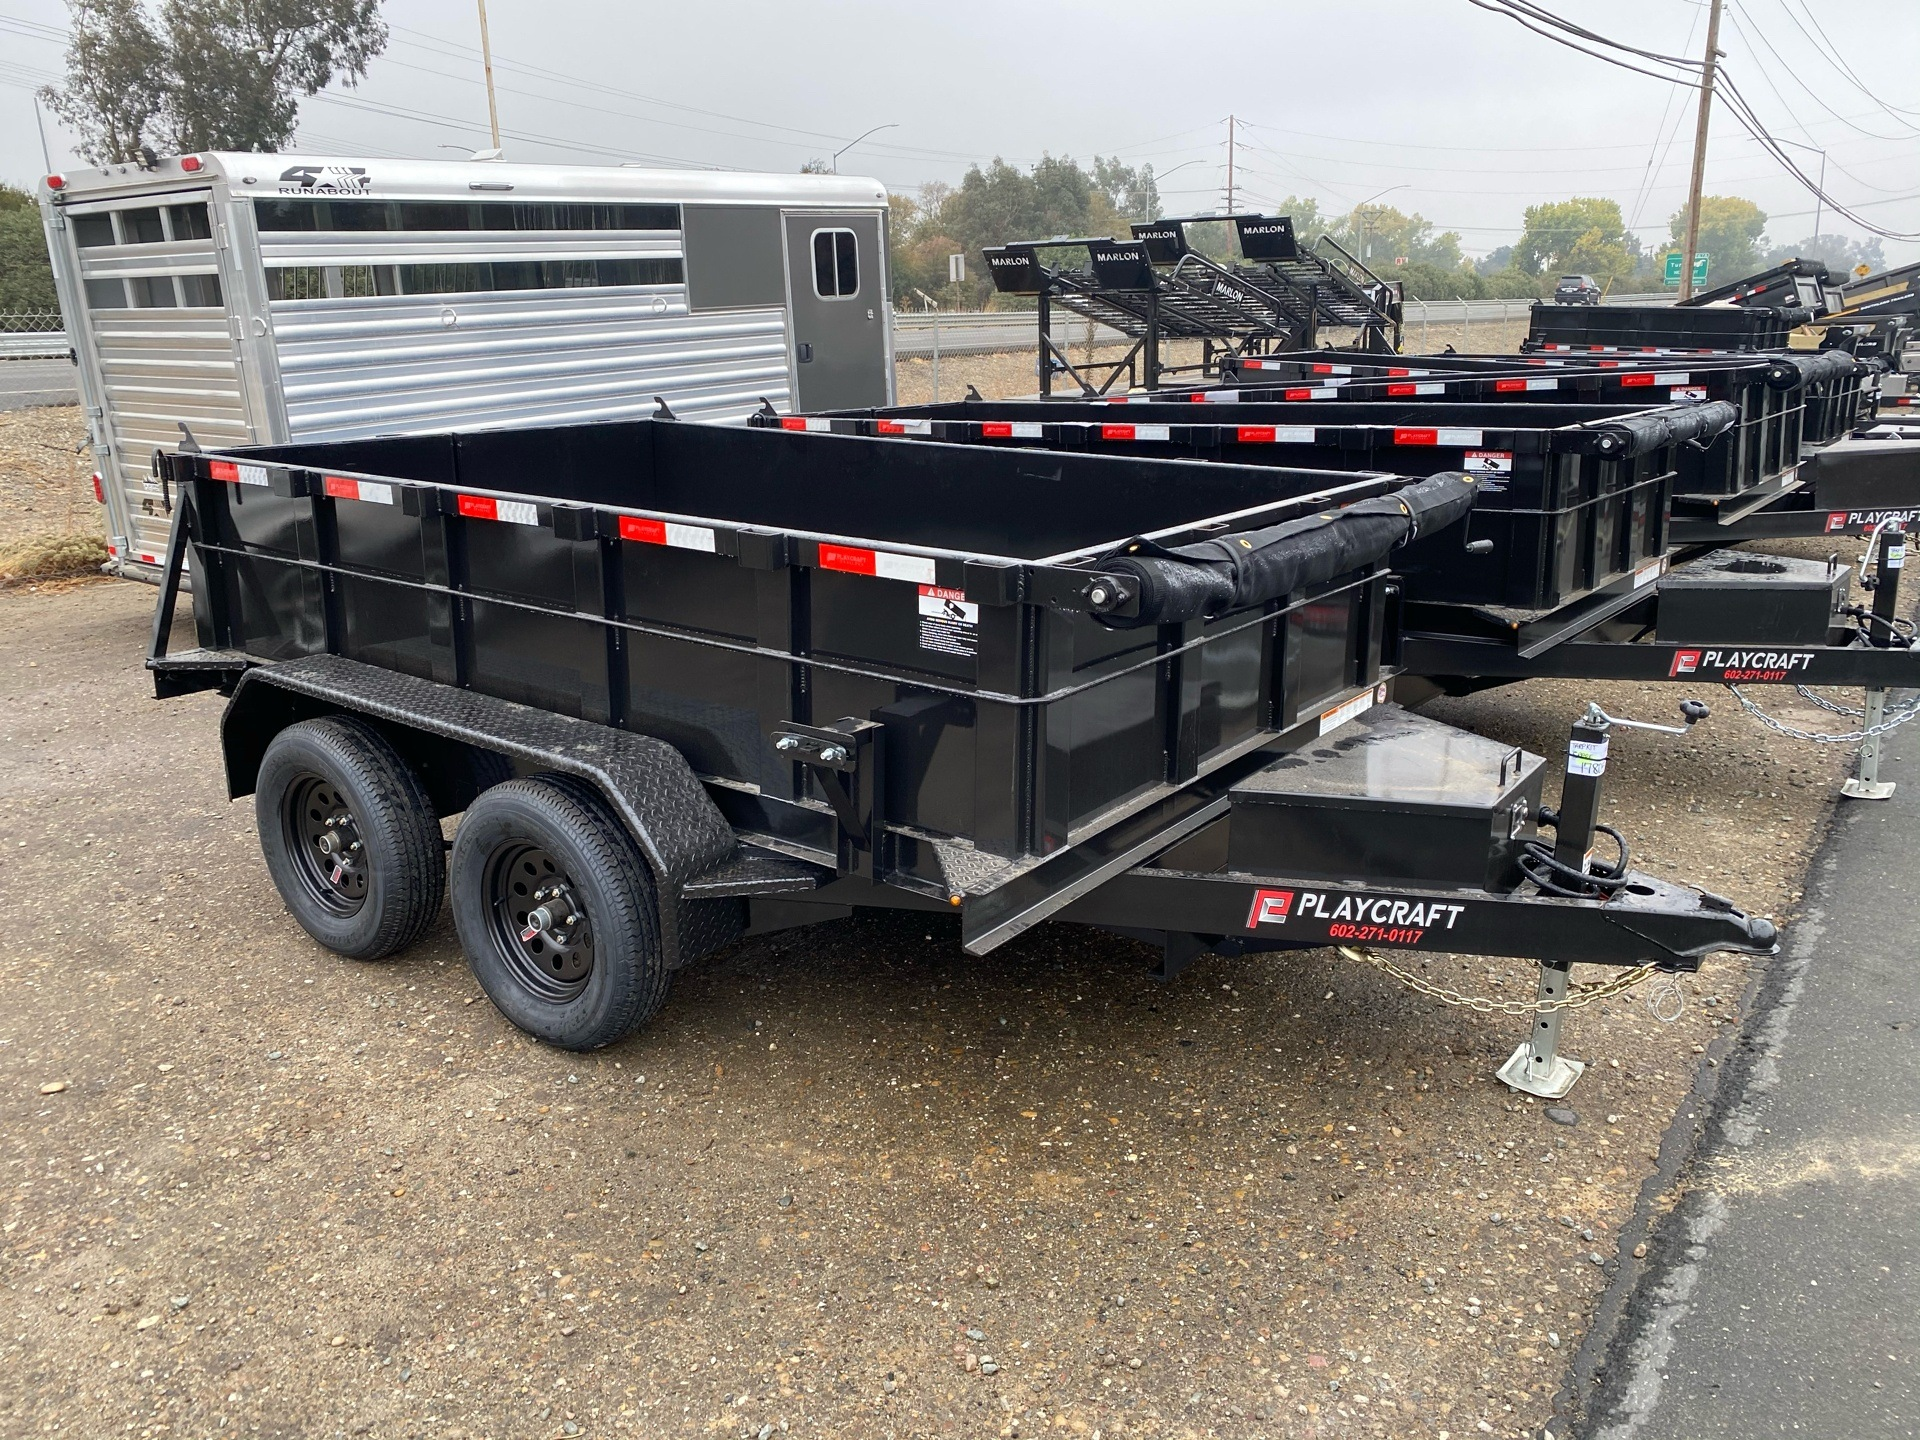 2021 Playcraft Trailers 10' x 6'  Dump Trailer in Acampo, California - Photo 4